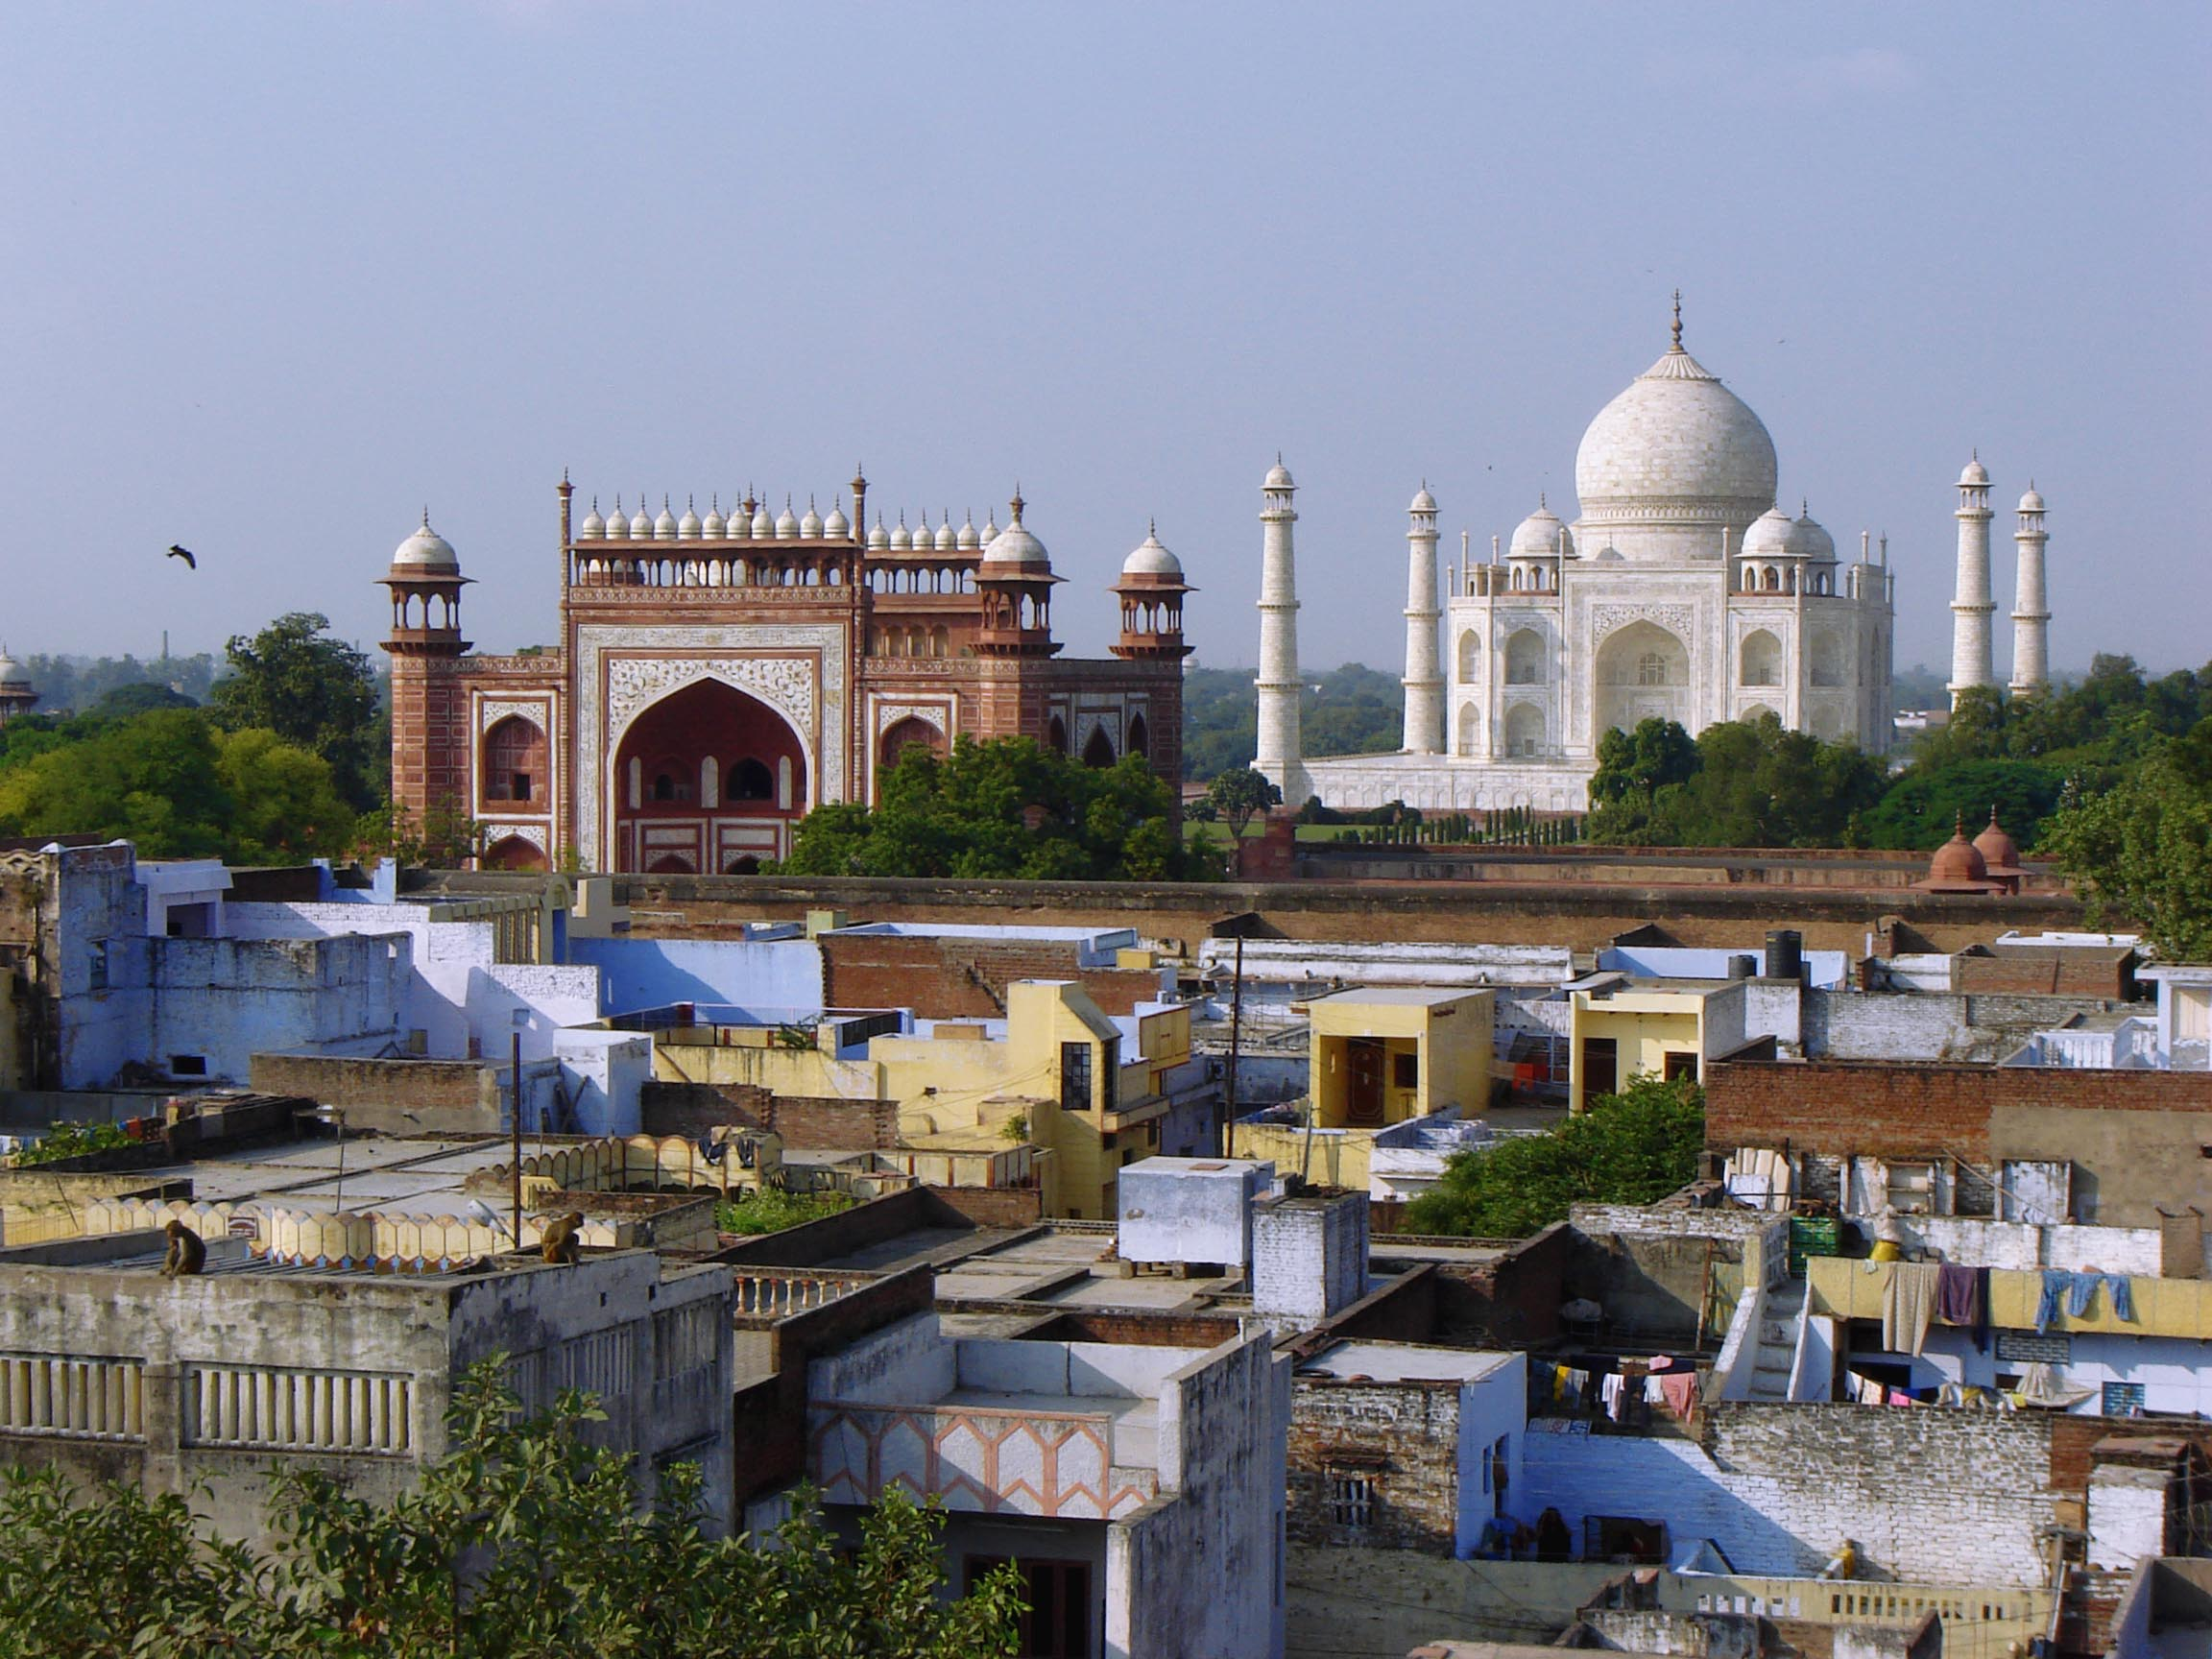 Attractions in India Close Temporarily